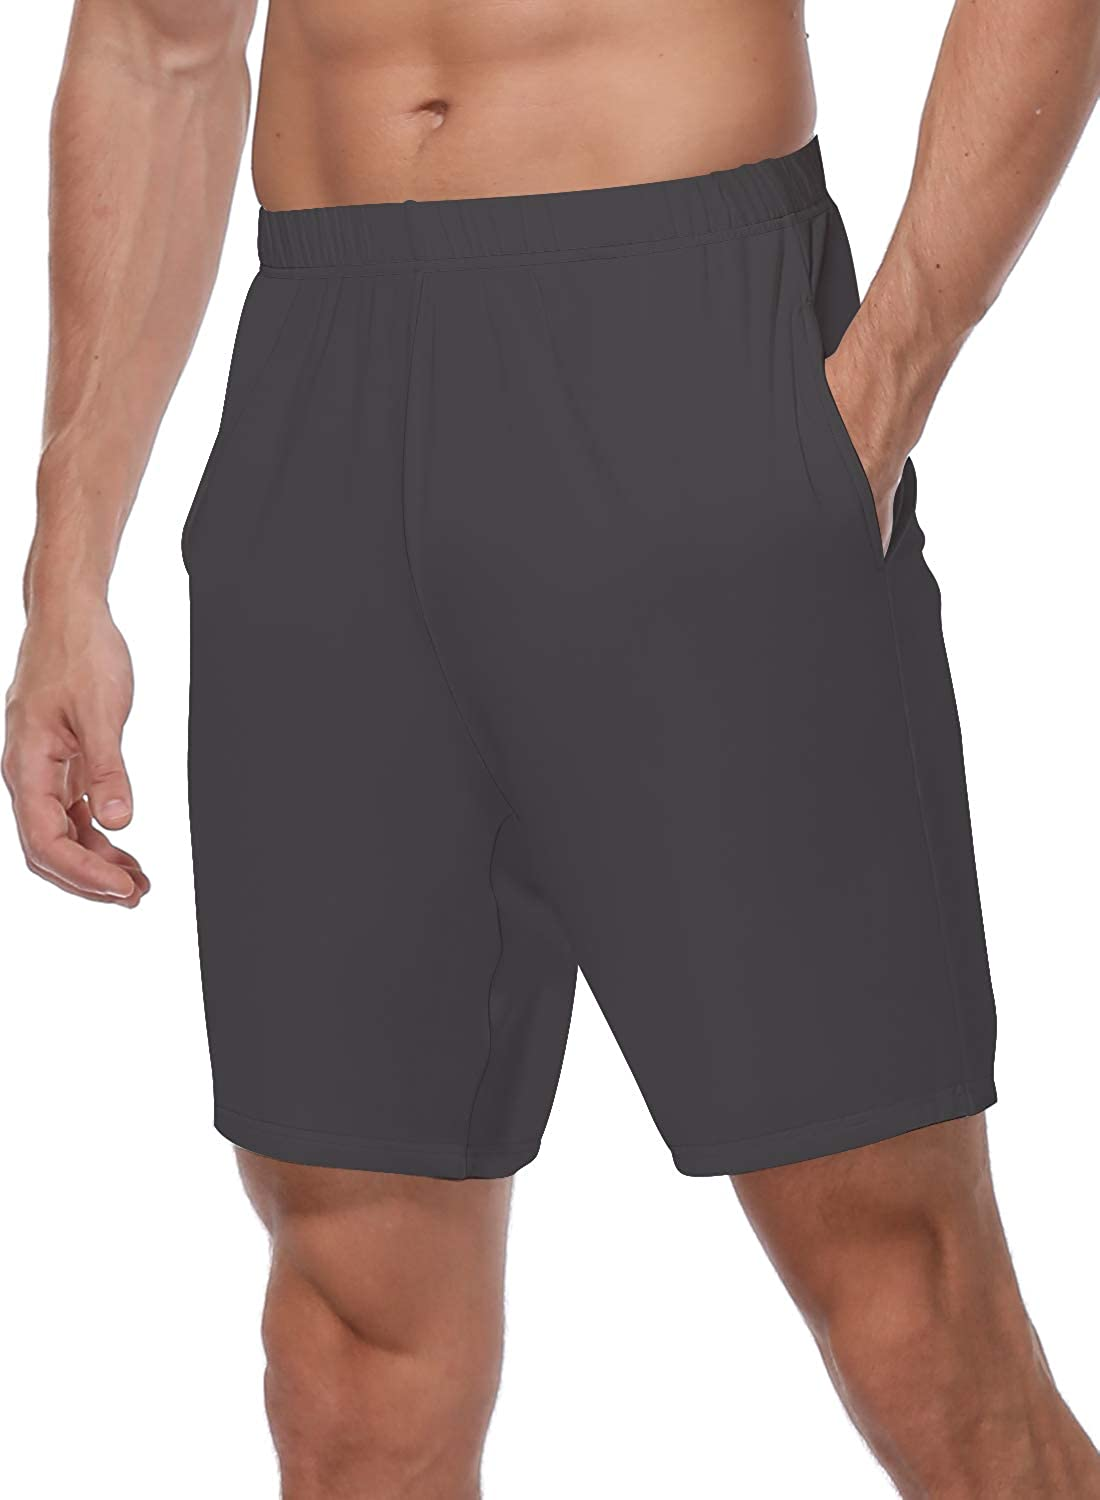 HISKYWIN Mens 7 Inch Modal Supreme Soft Knit Casual Shorts with Pocket Elastic Waist Loungewear Relaxed Sleep Lounge Shorts